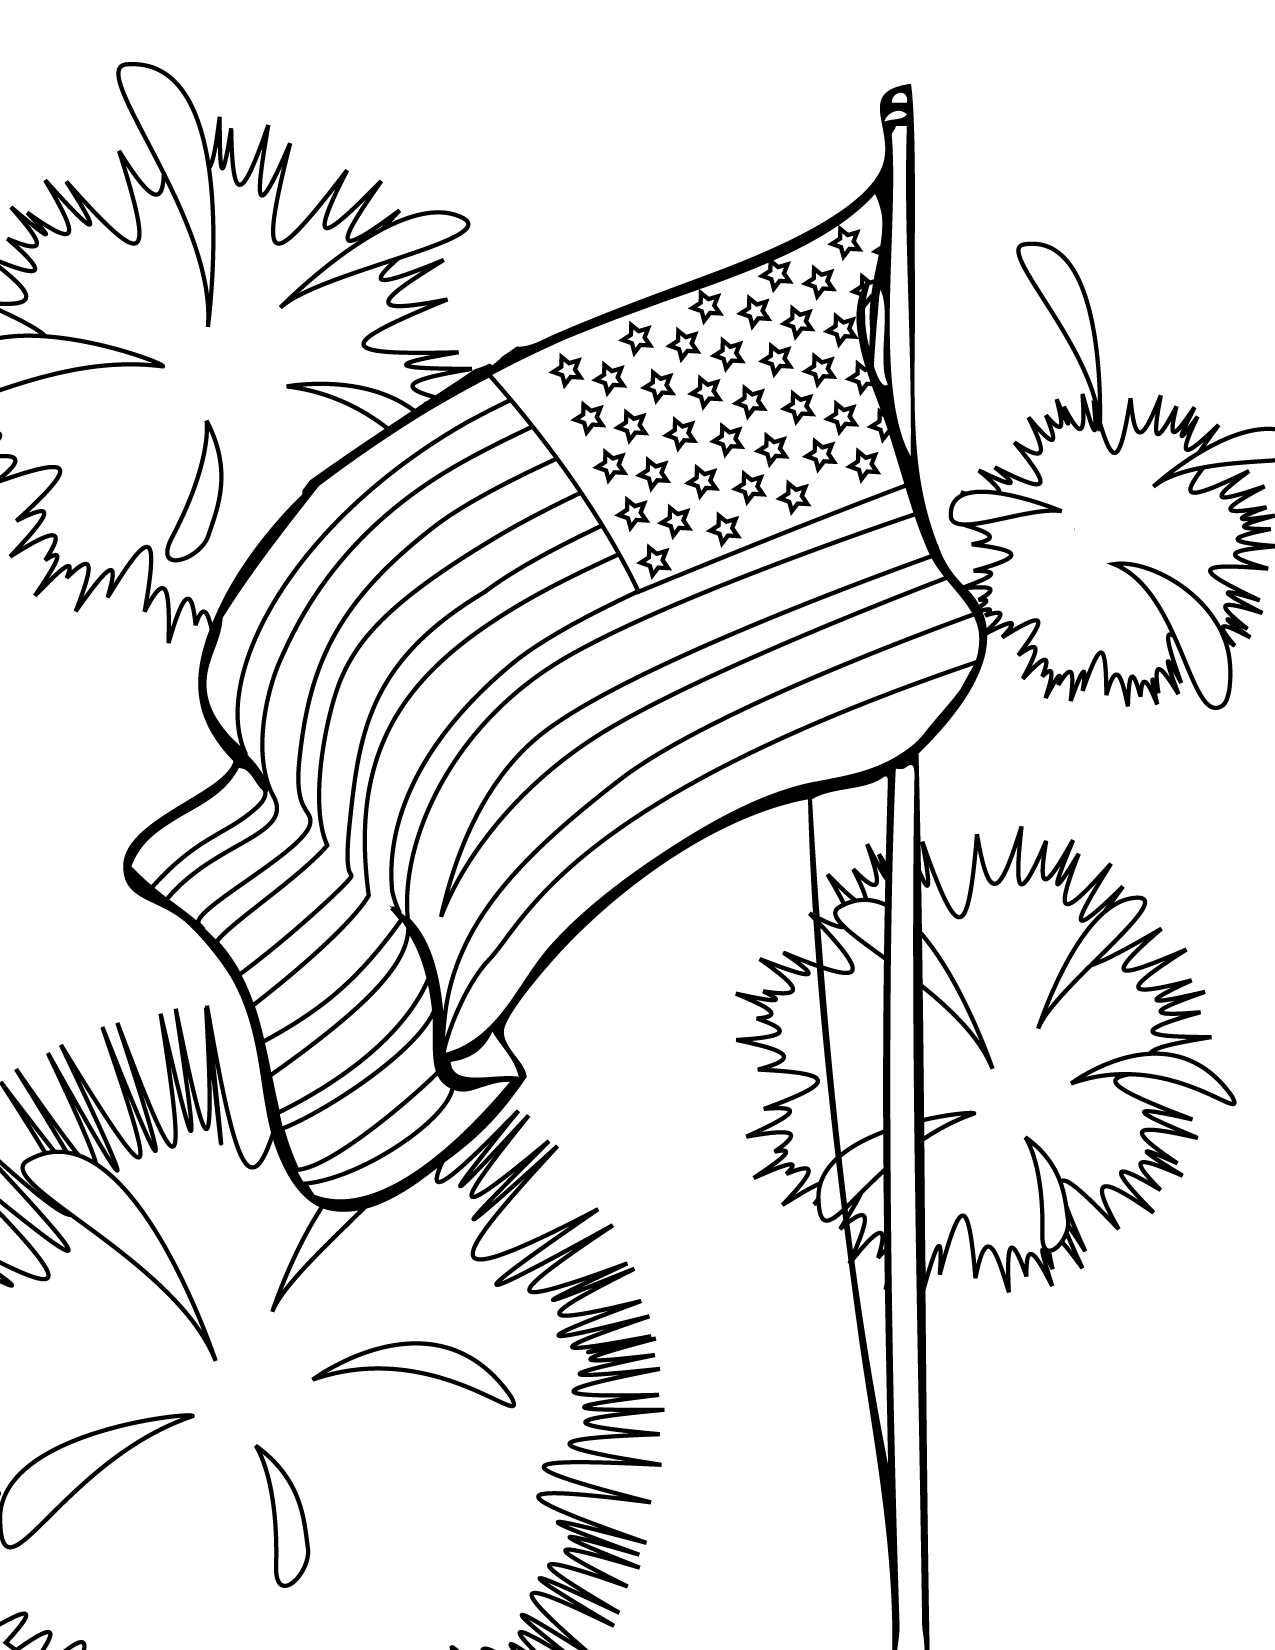 coloring pictures 4th of july the best fourth of july printable coloring pages jimmy july coloring 4th pictures of